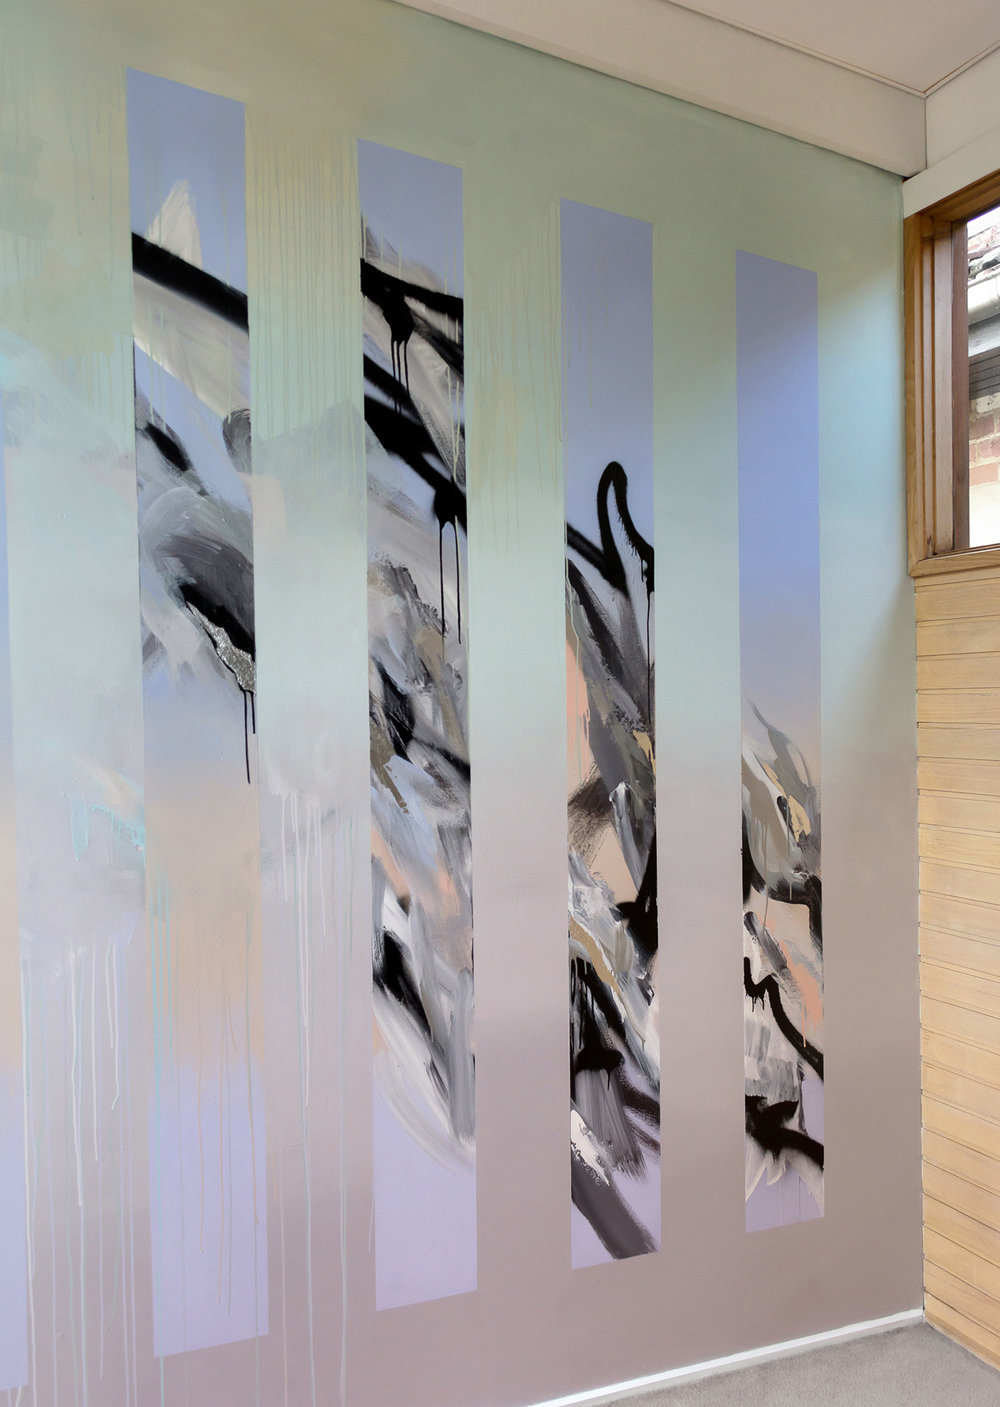 Abstract mural in living room with silver leaf and two different gradients in pastel colors, the contemporary painted design has movement, painted drips and the energy of water.